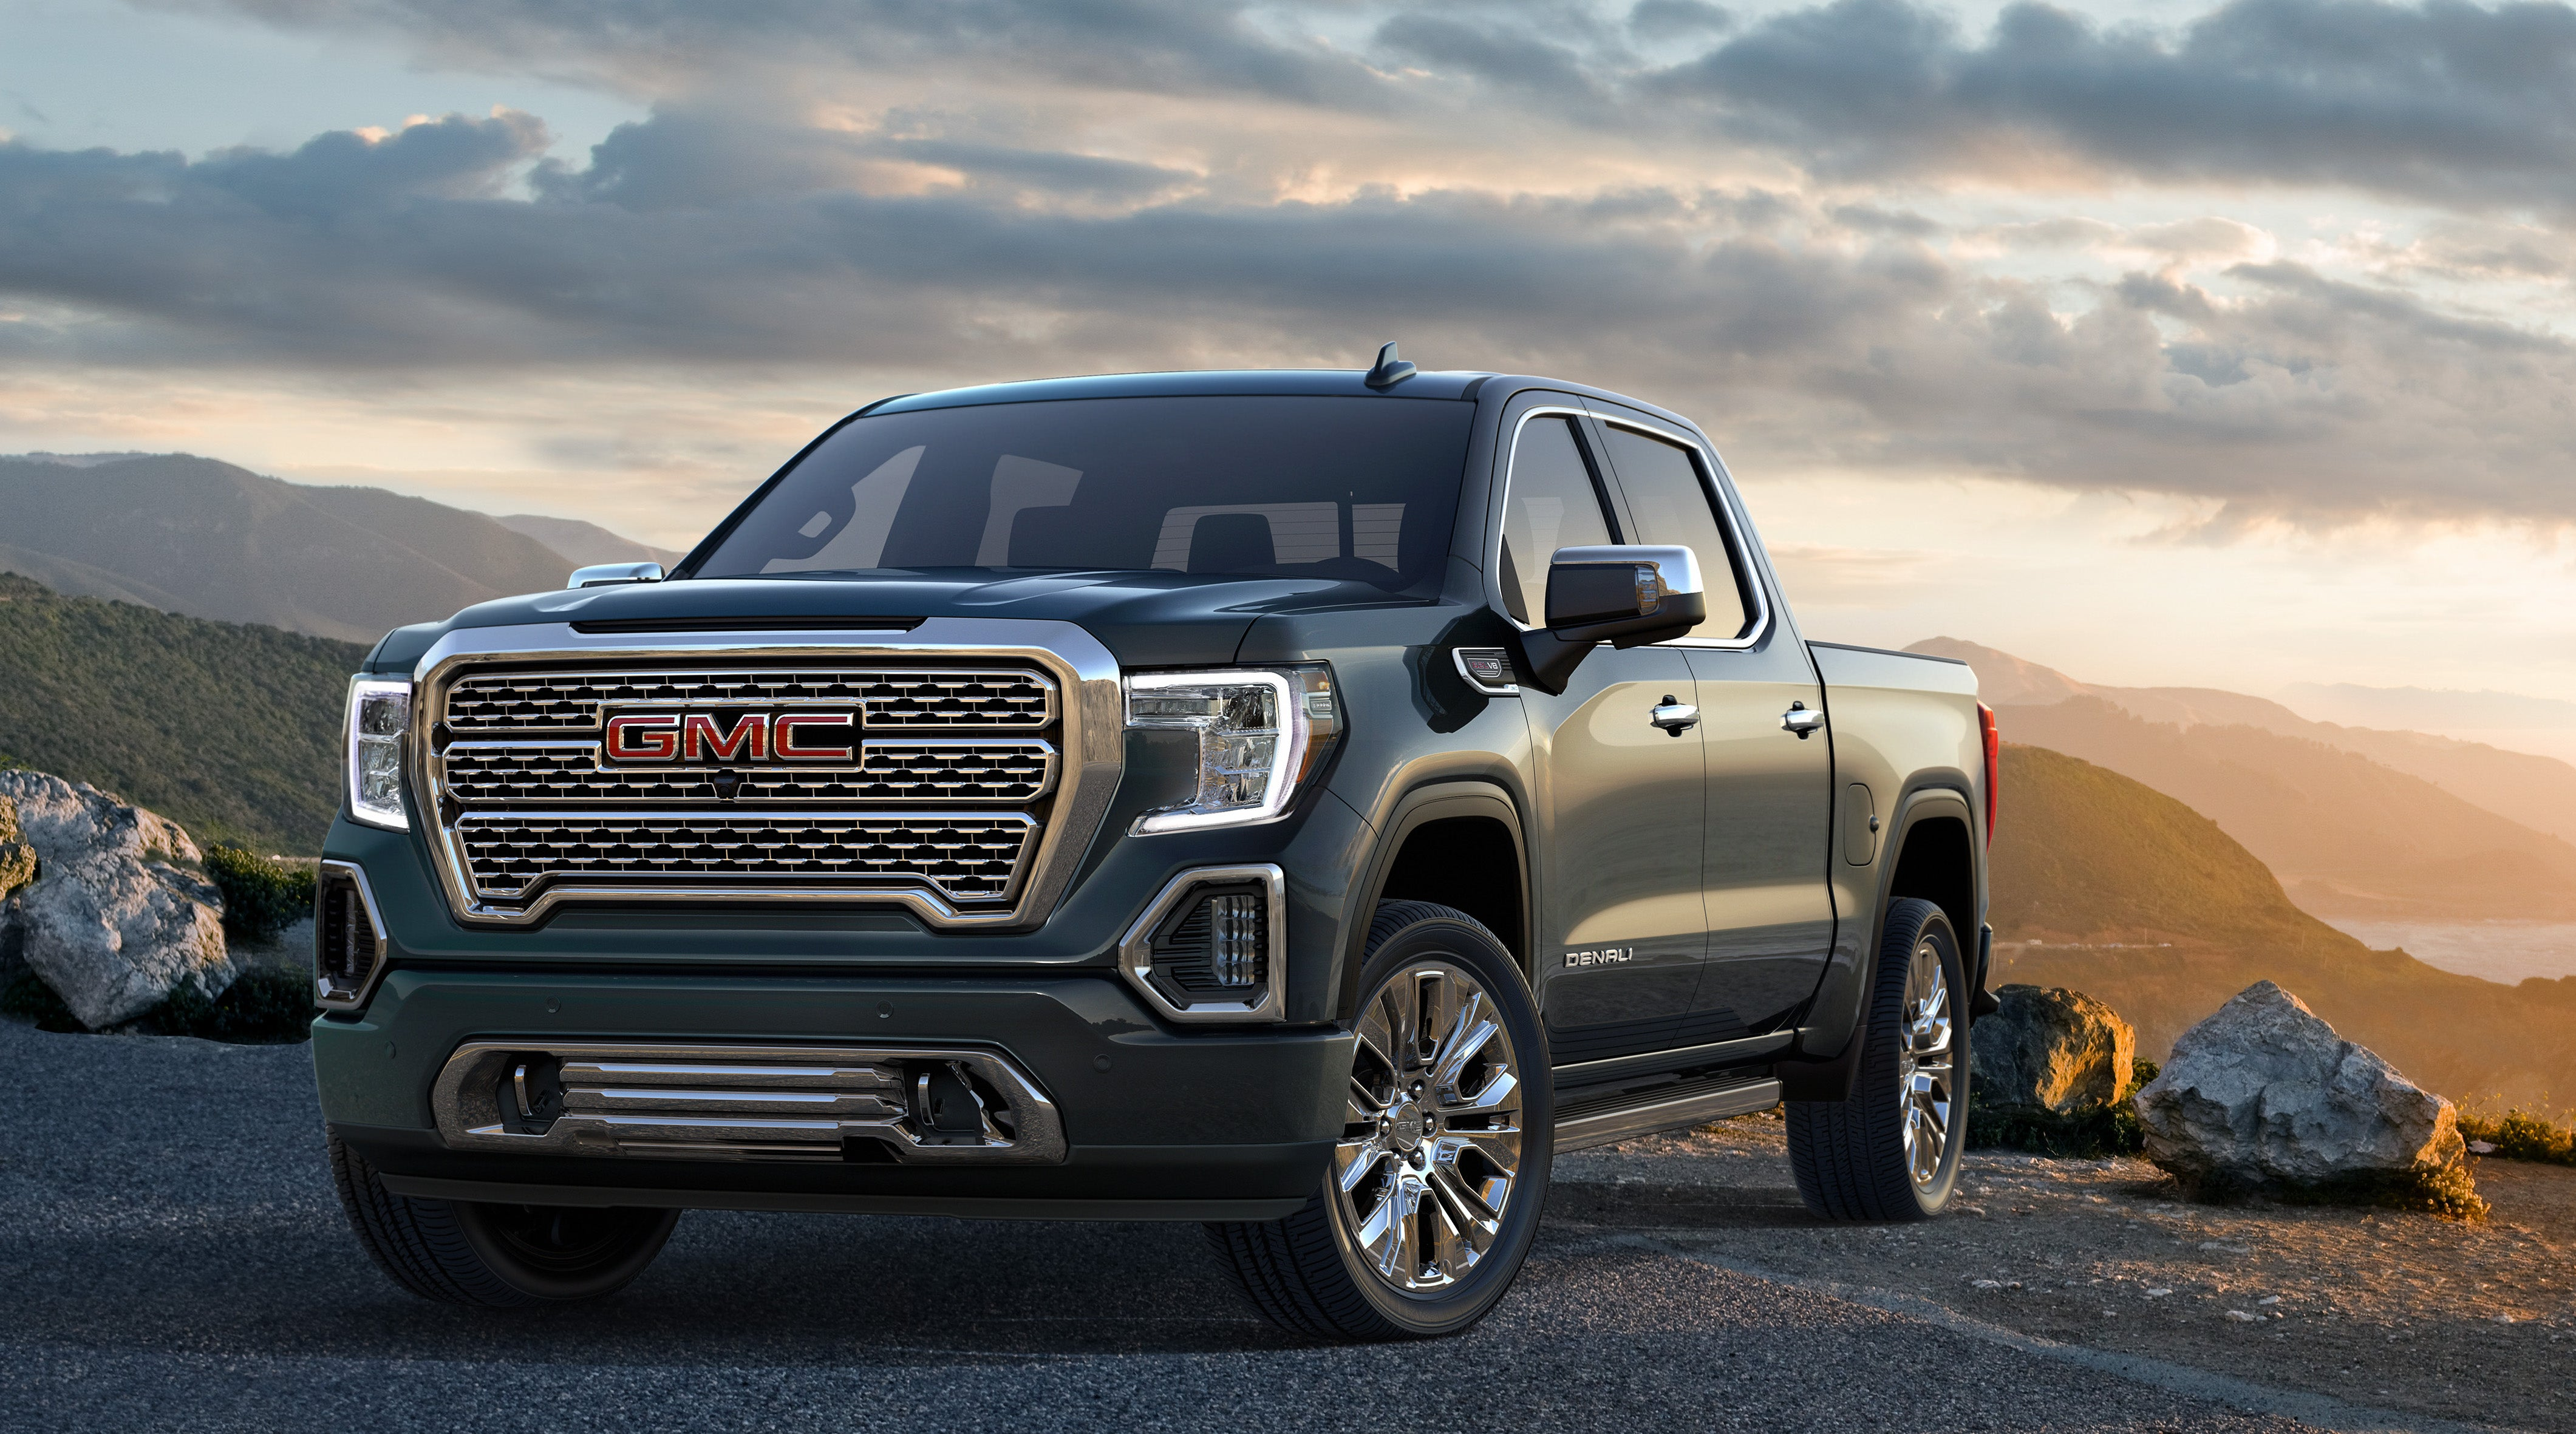 Gmc Vs Chevy >> Why General Motors' U.S. Sales Dropped in 2018 | The Motley Fool